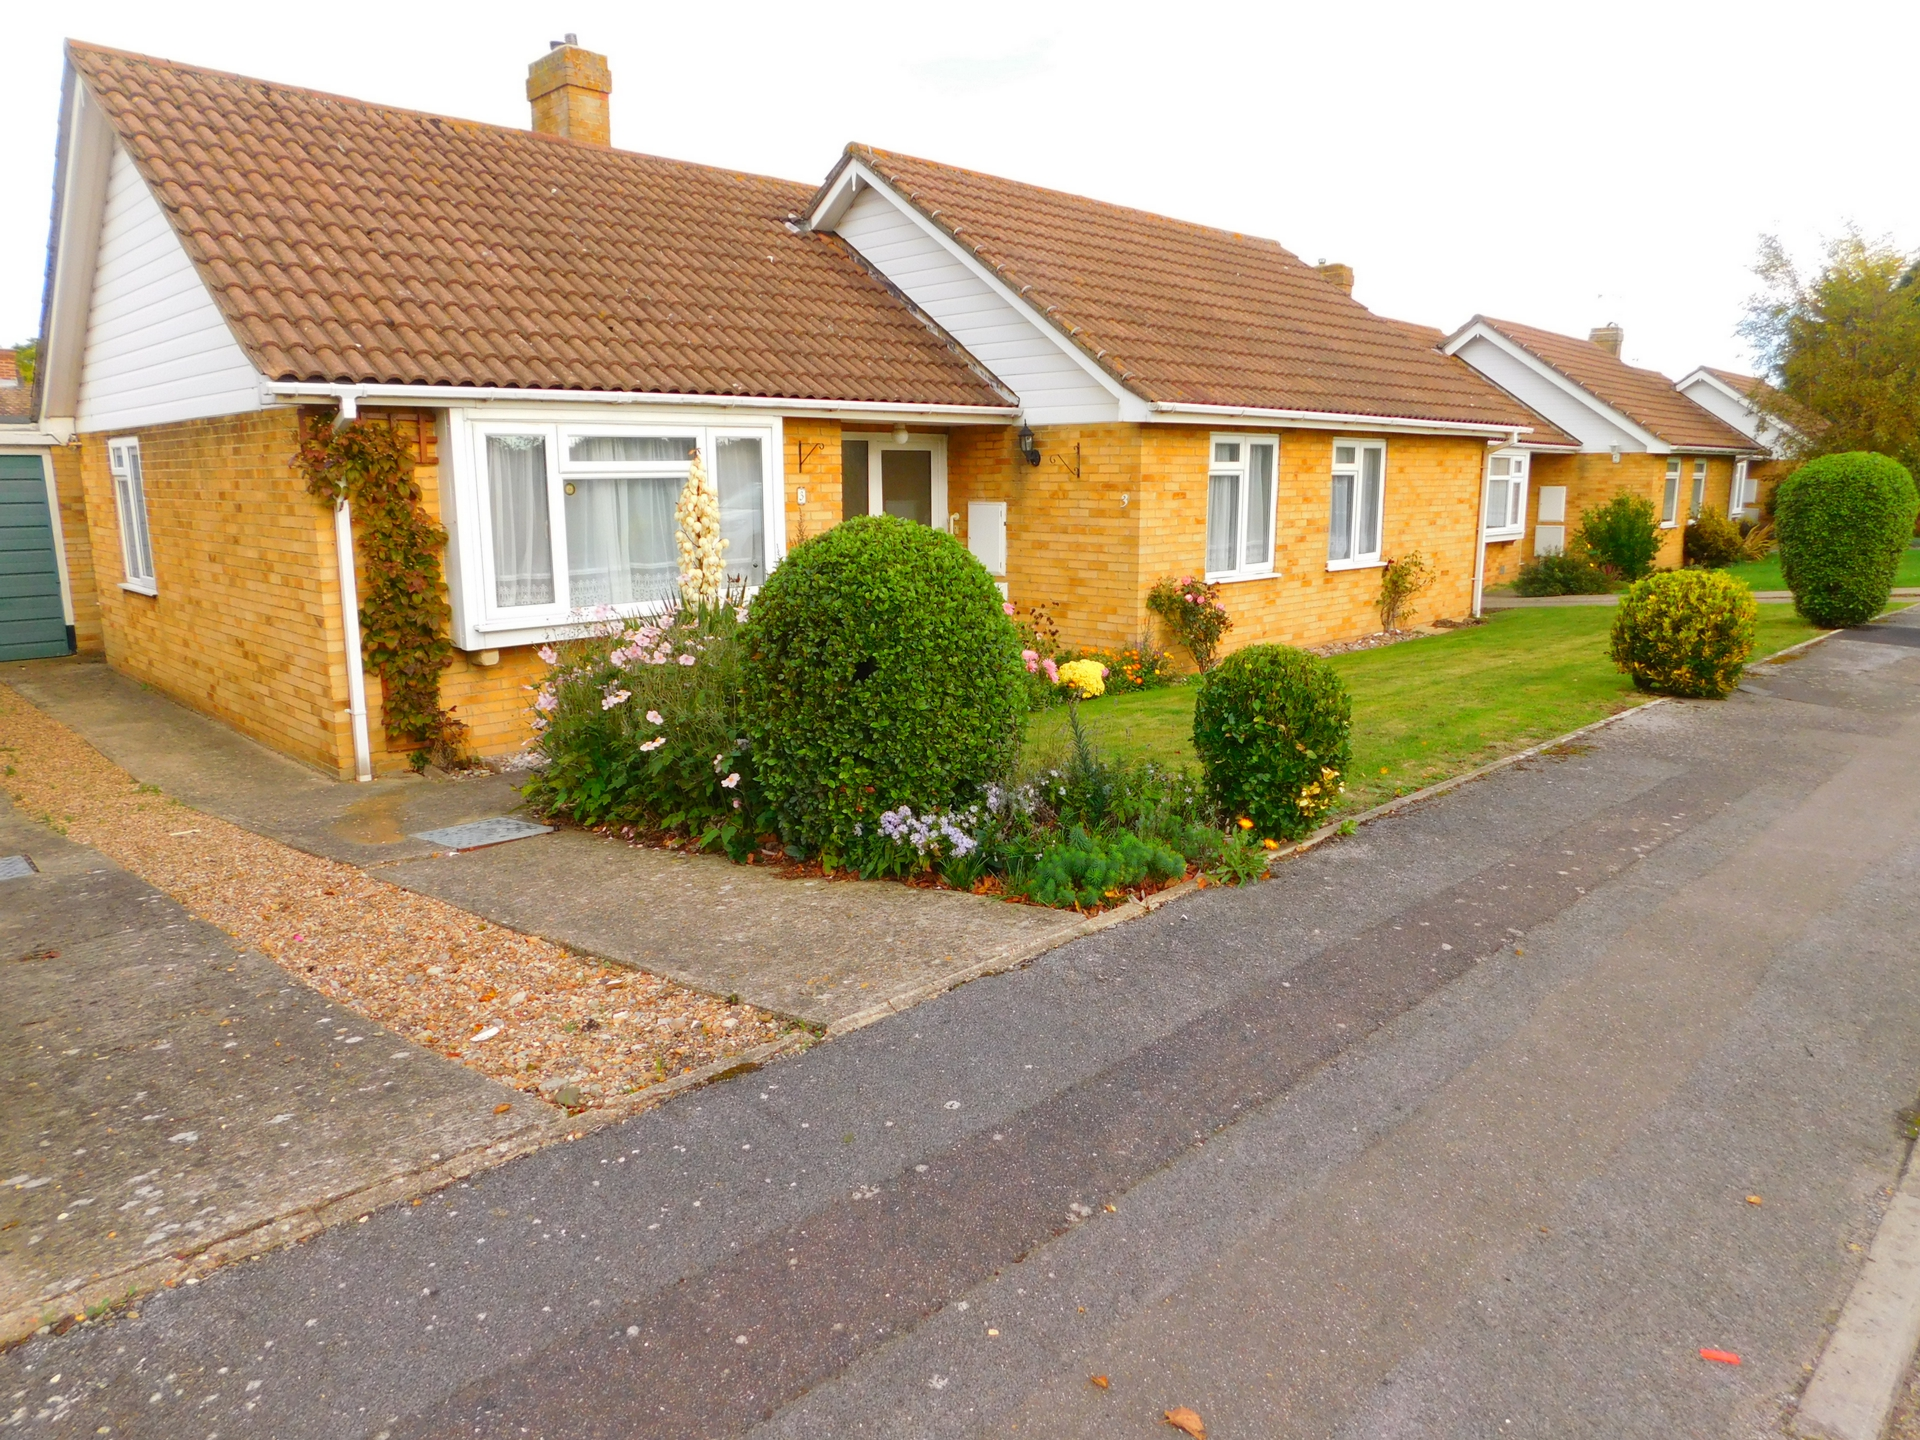 3 bed bungalow to rent in Cheesmans Close, Minster, CT12 - Property Image 1